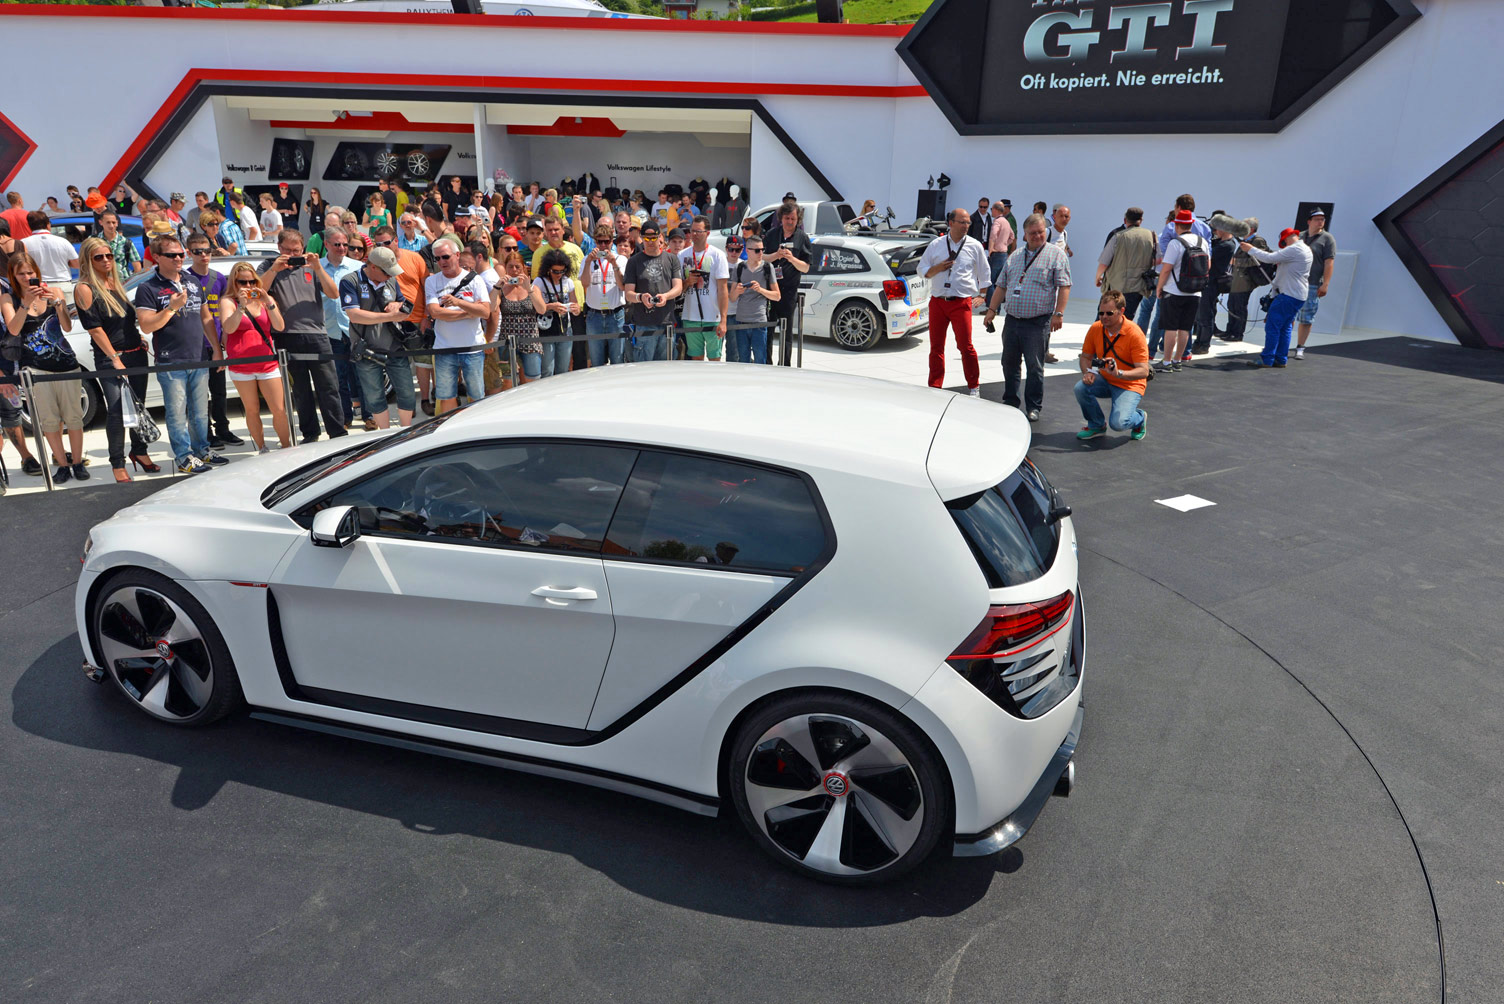 volkswagen-design-vision-gti-worthersee-051